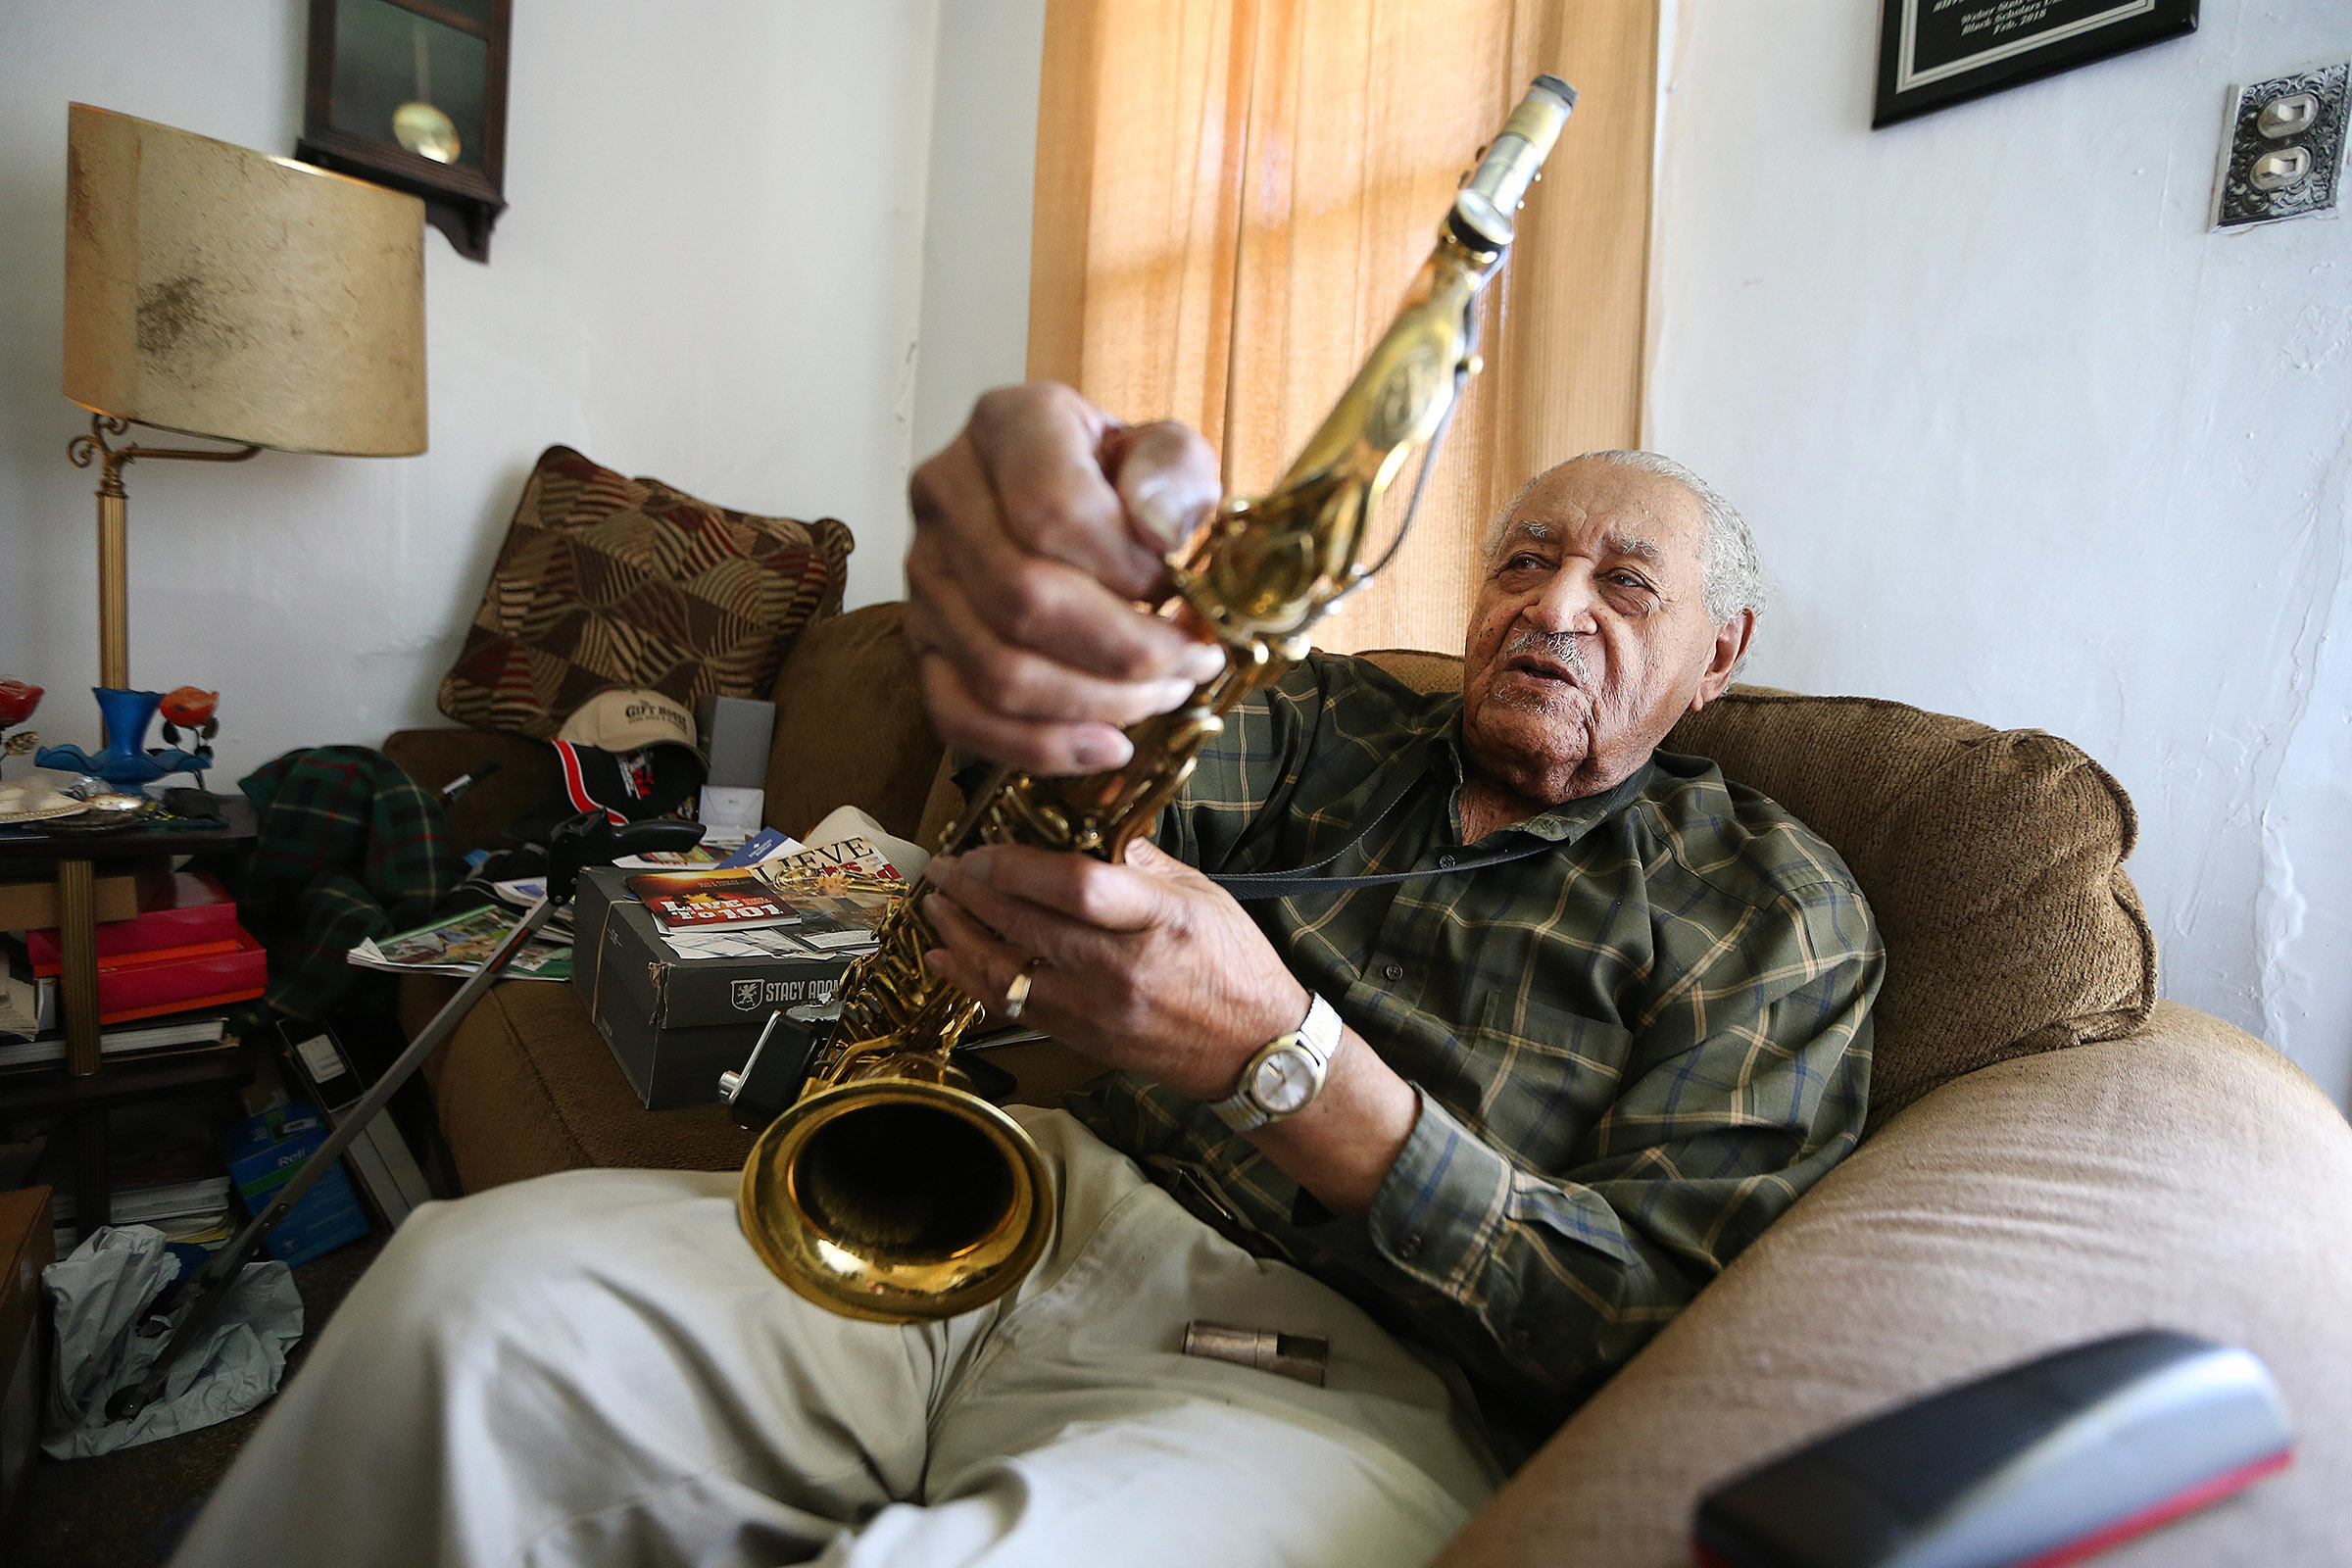 Saxophone player Joe McQueen, still going strong as he nears his 99th birthday, Joe adjusts his horn at his Ogden home on Saturday, May 26, 2018.